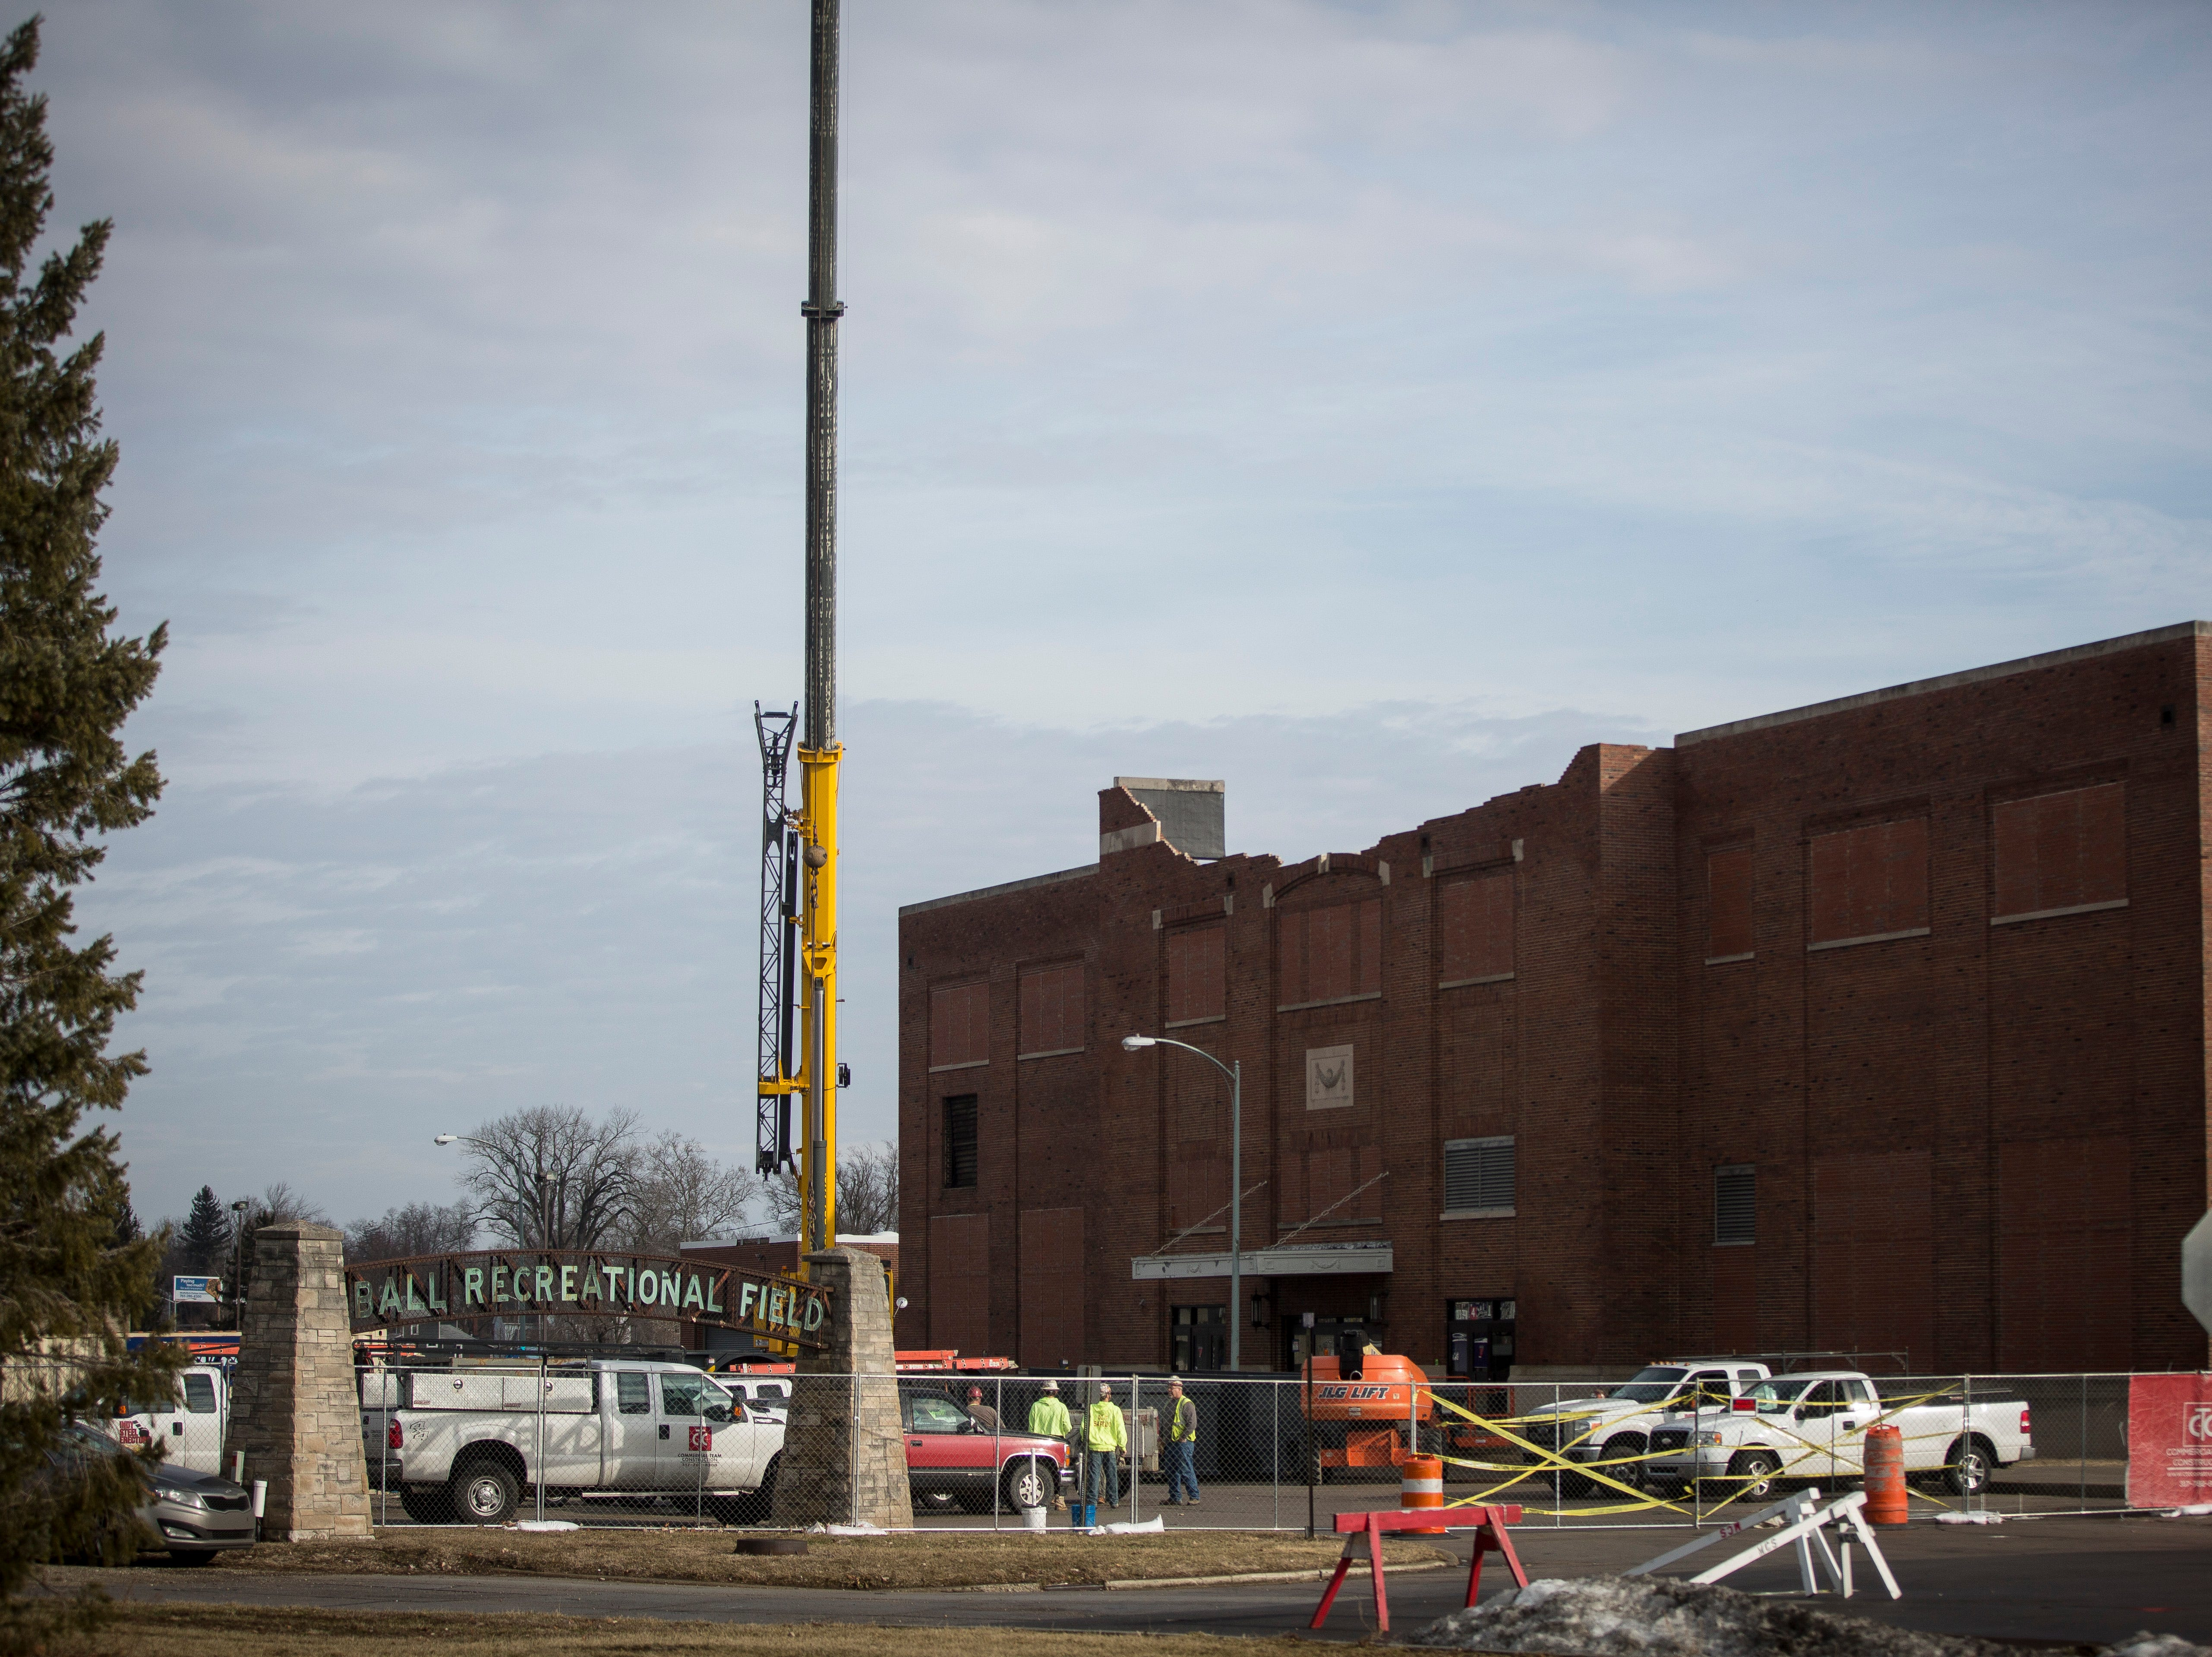 Construction crews and a crane begin work on the Muncie Central Fieldhouse Monday morning before rain swept through the area. Workers removed the roof of the historic building Monday, with officials saying that the new roof would be completed by the first week of March.